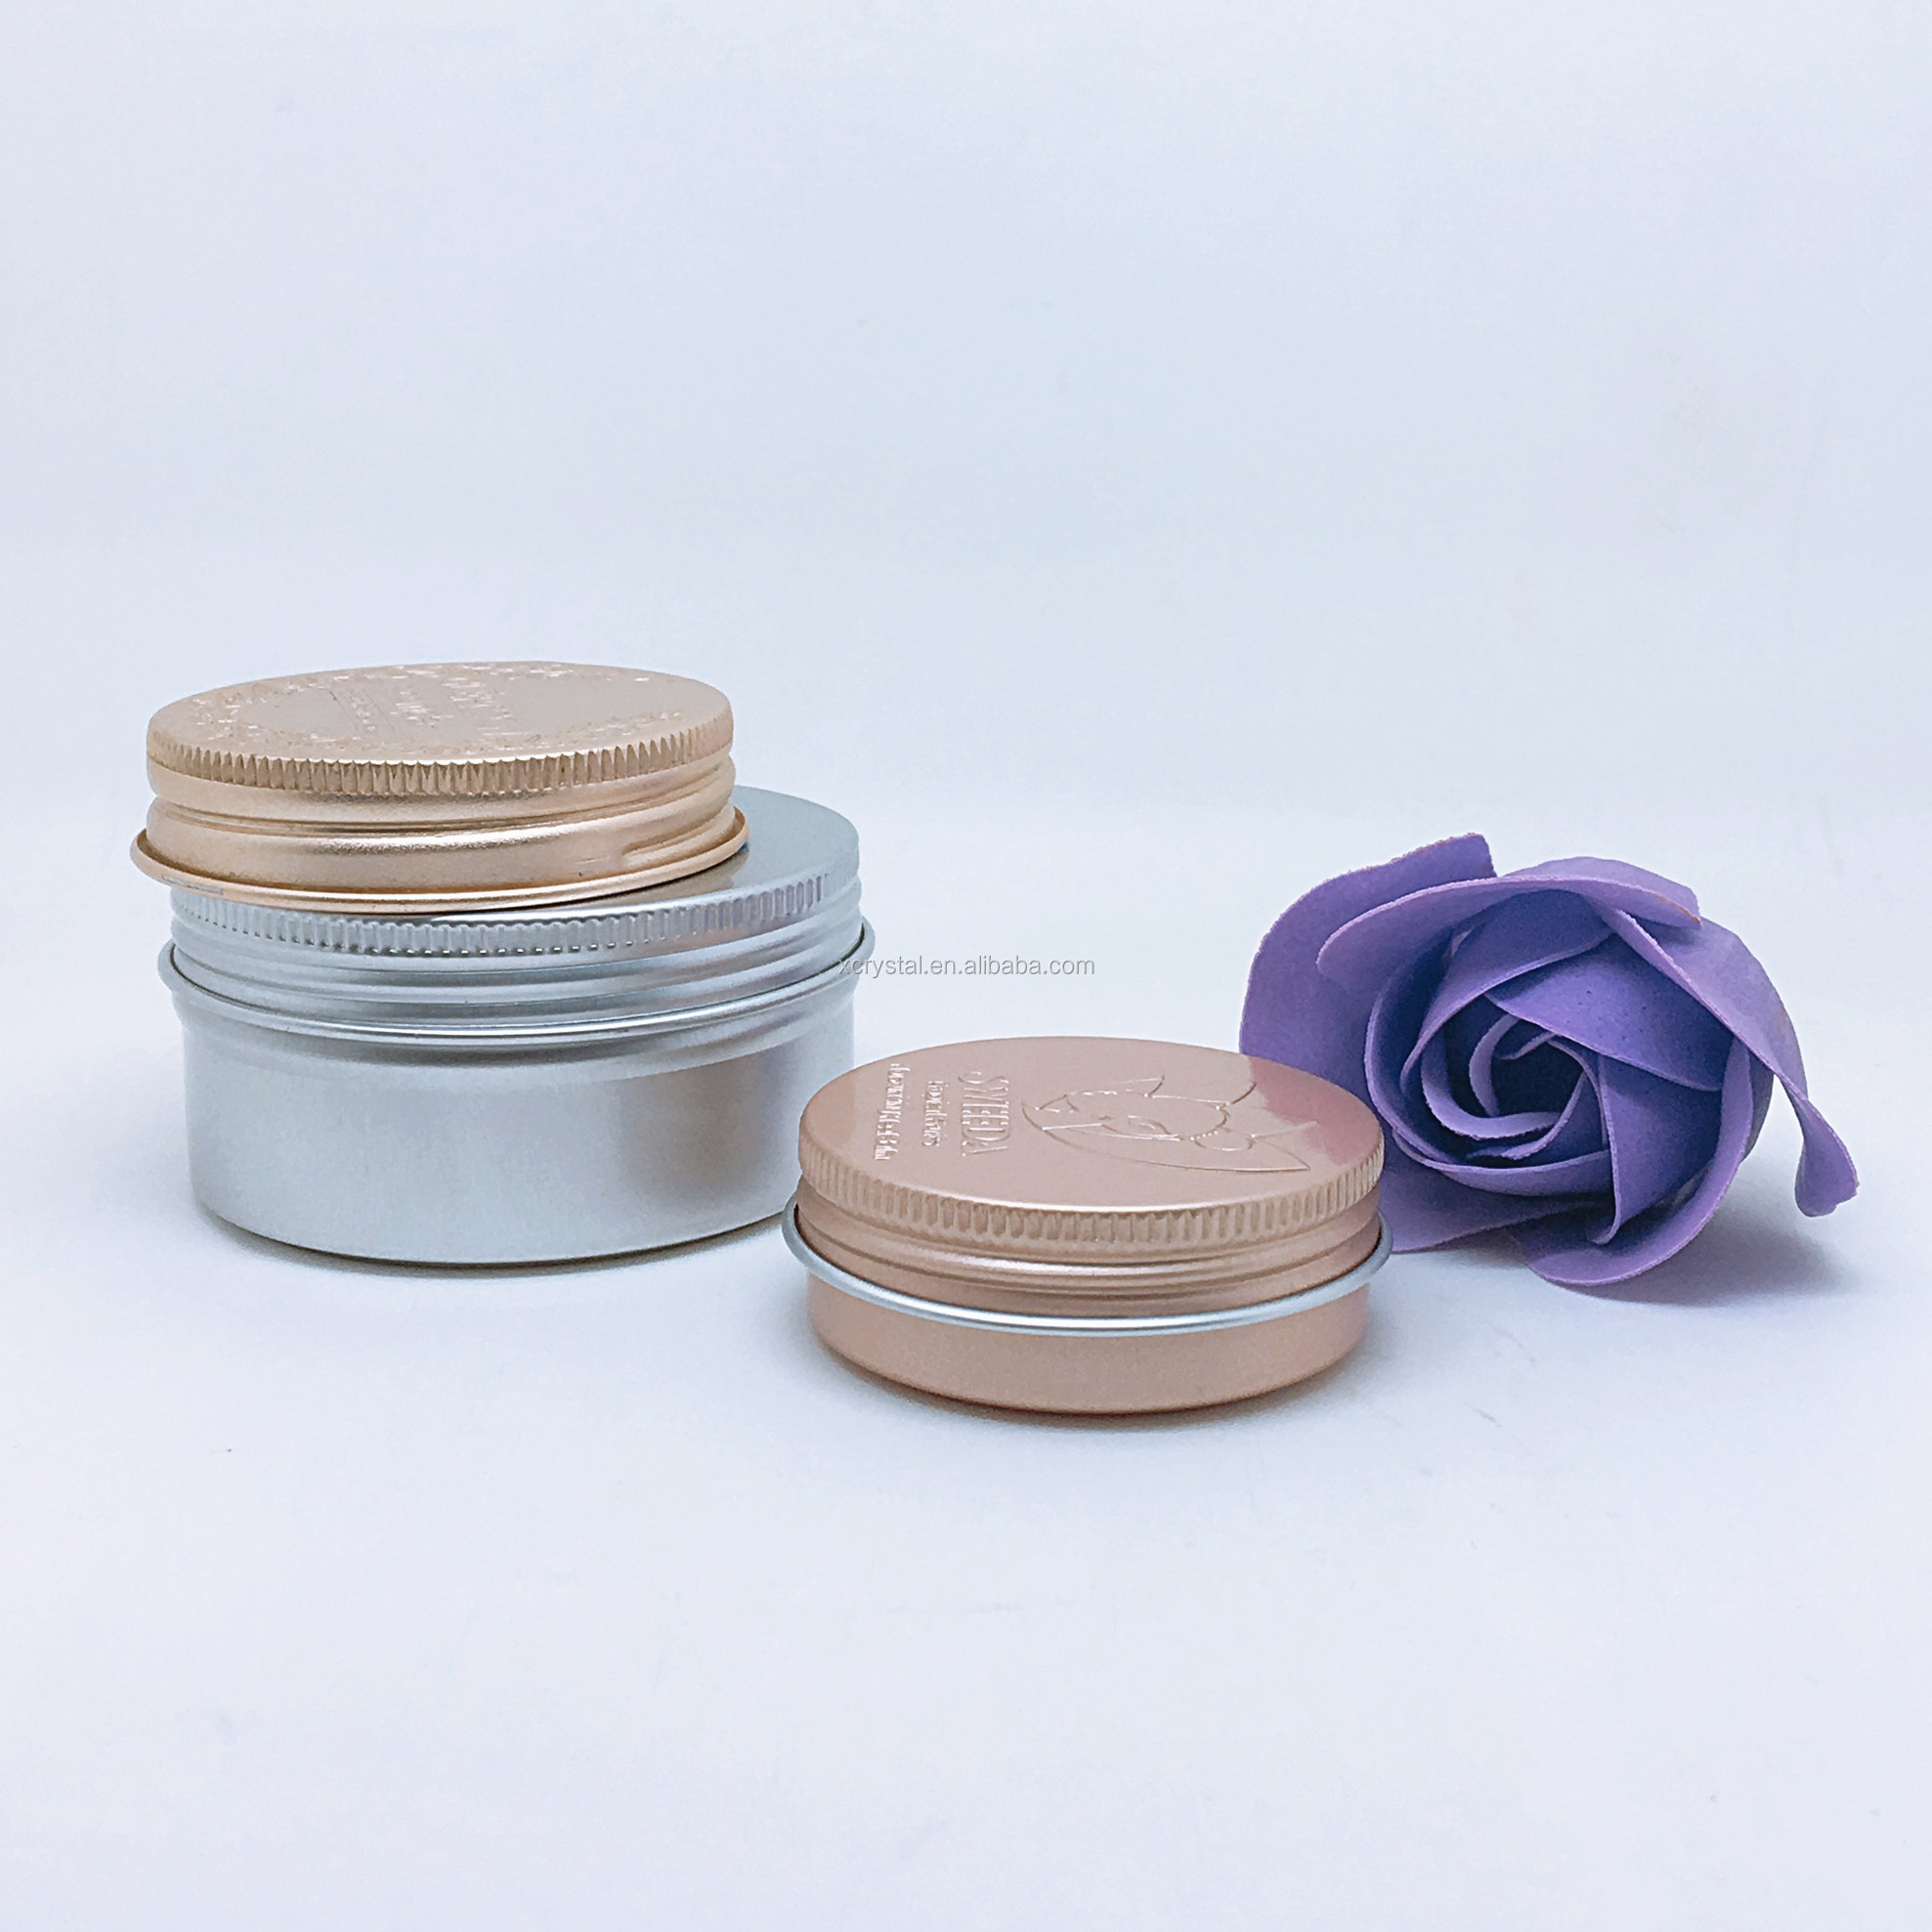 Rose Gold Cosmetic Containers, Rose Gold Cosmetic Containers Suppliers And